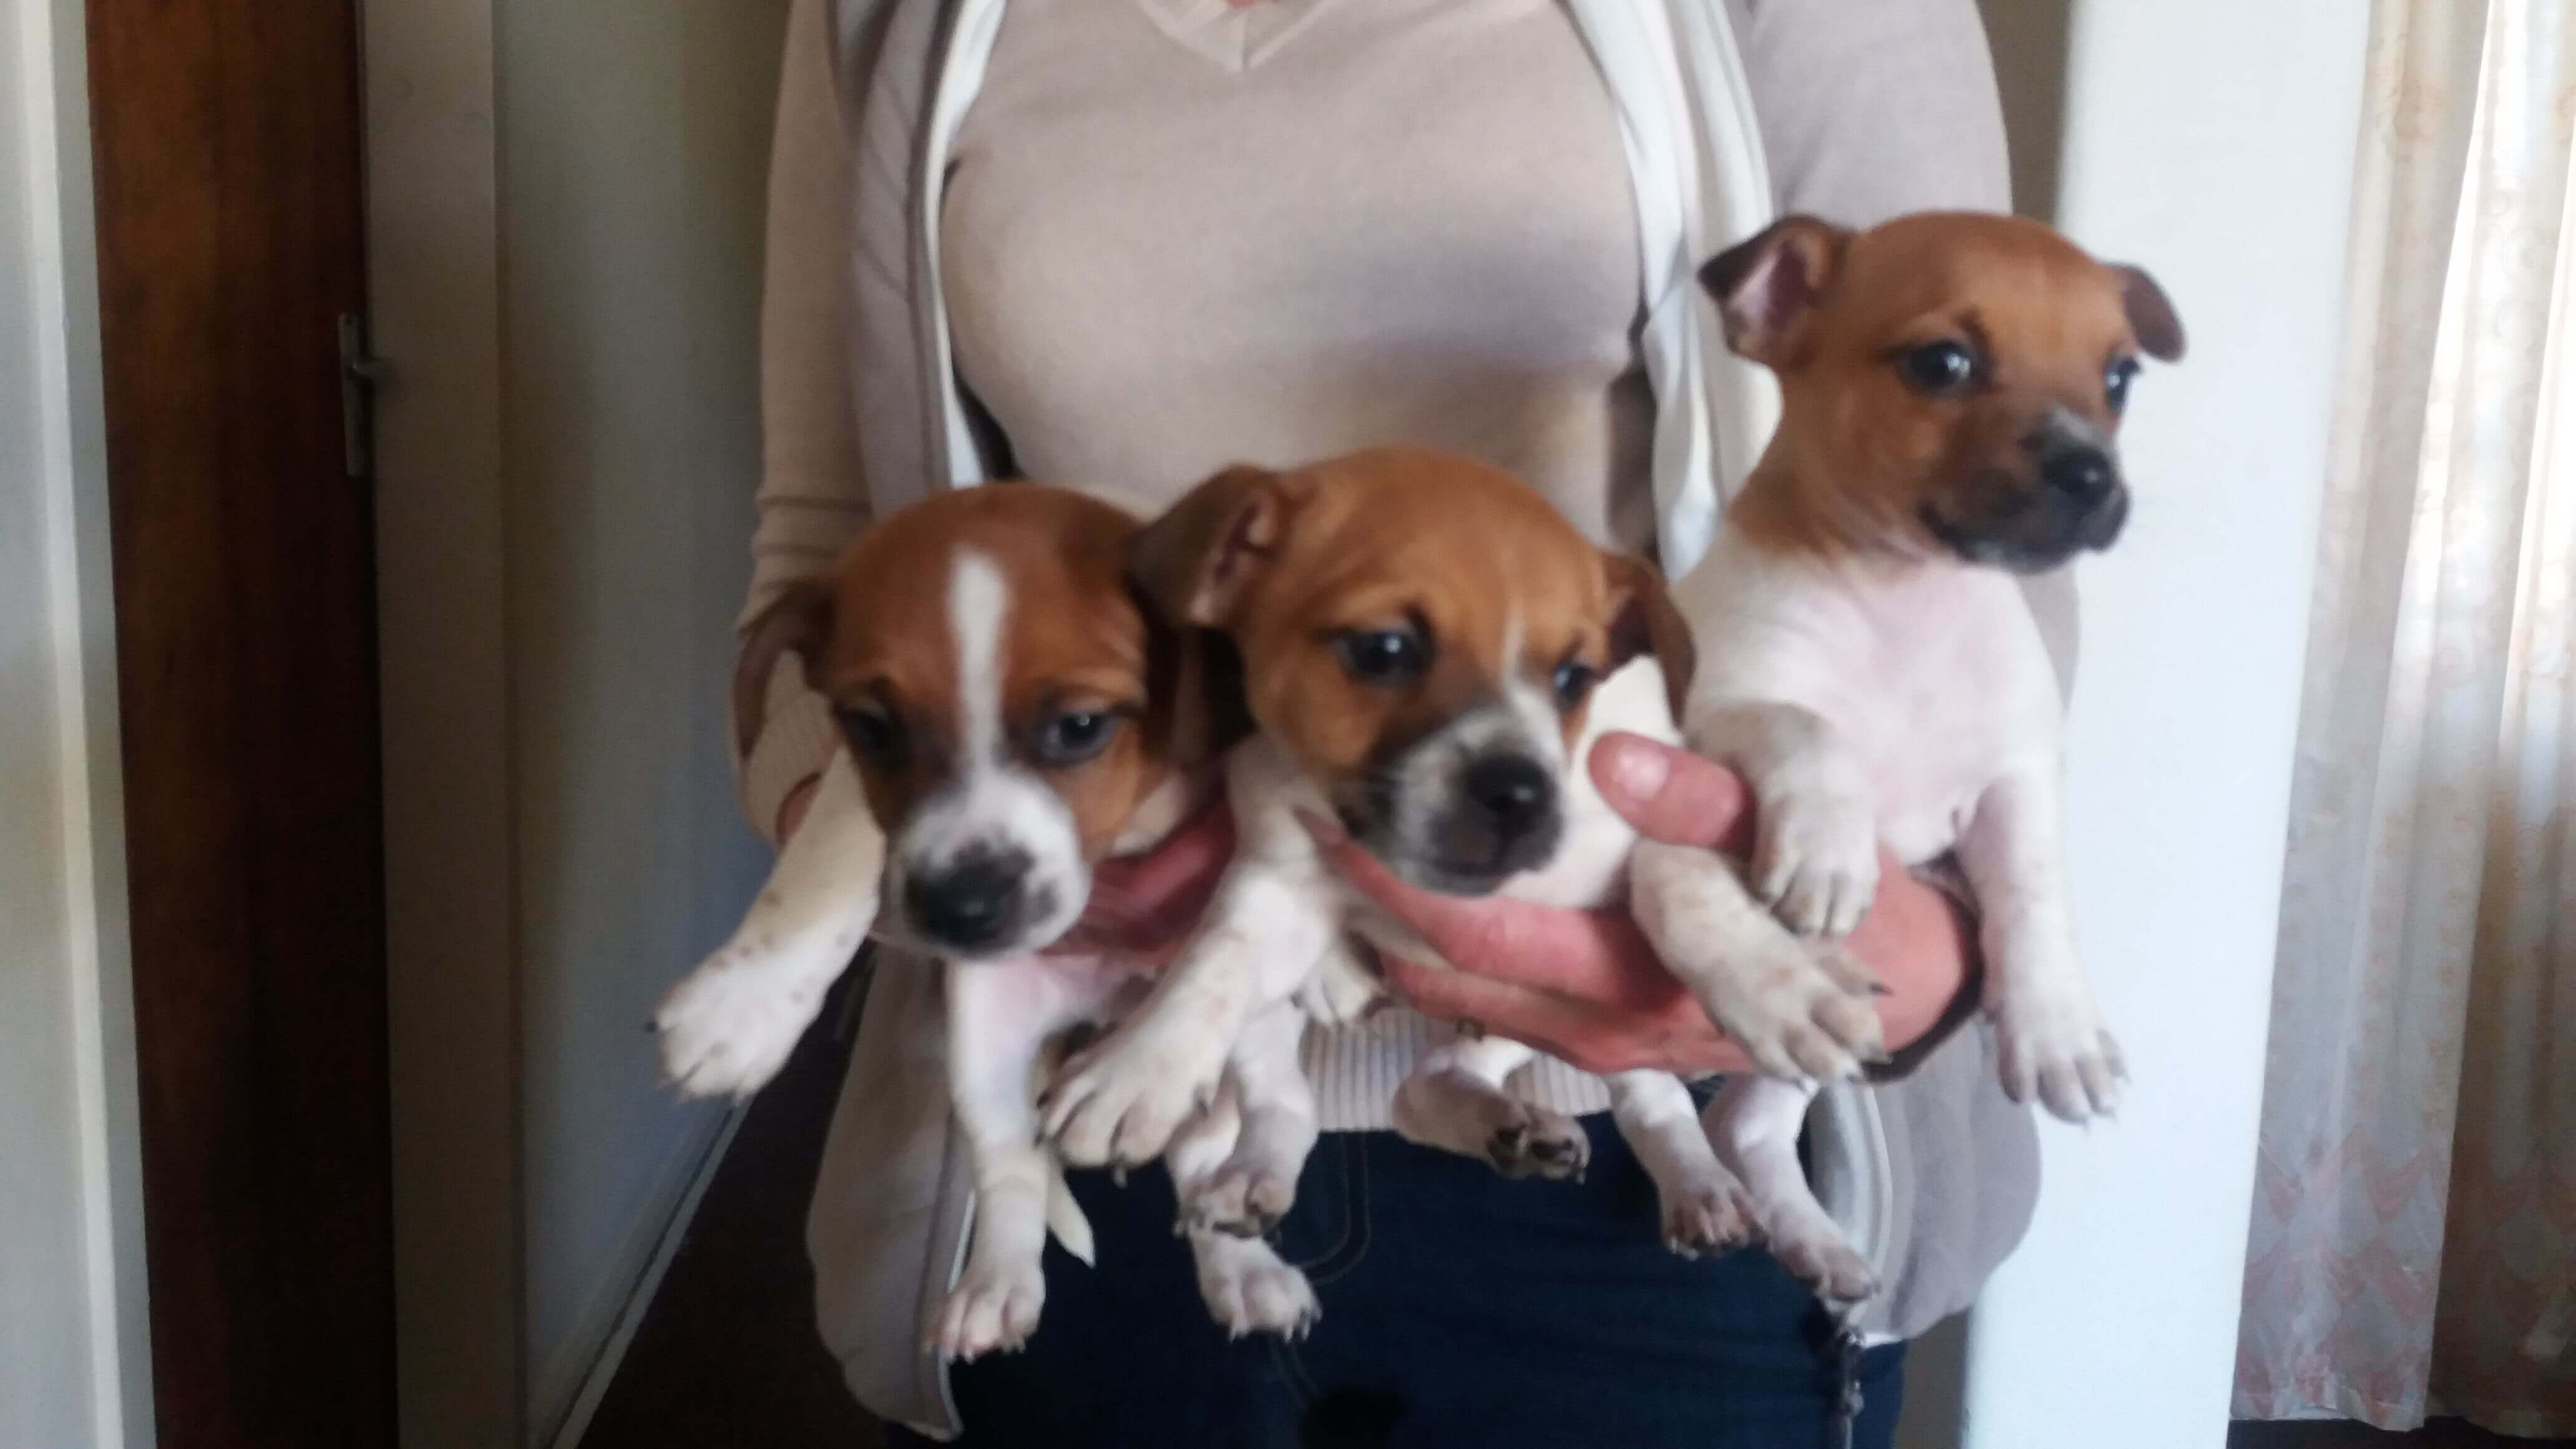 Jack Russel Puppies for Sale in Johannesburg by Barbara Stander